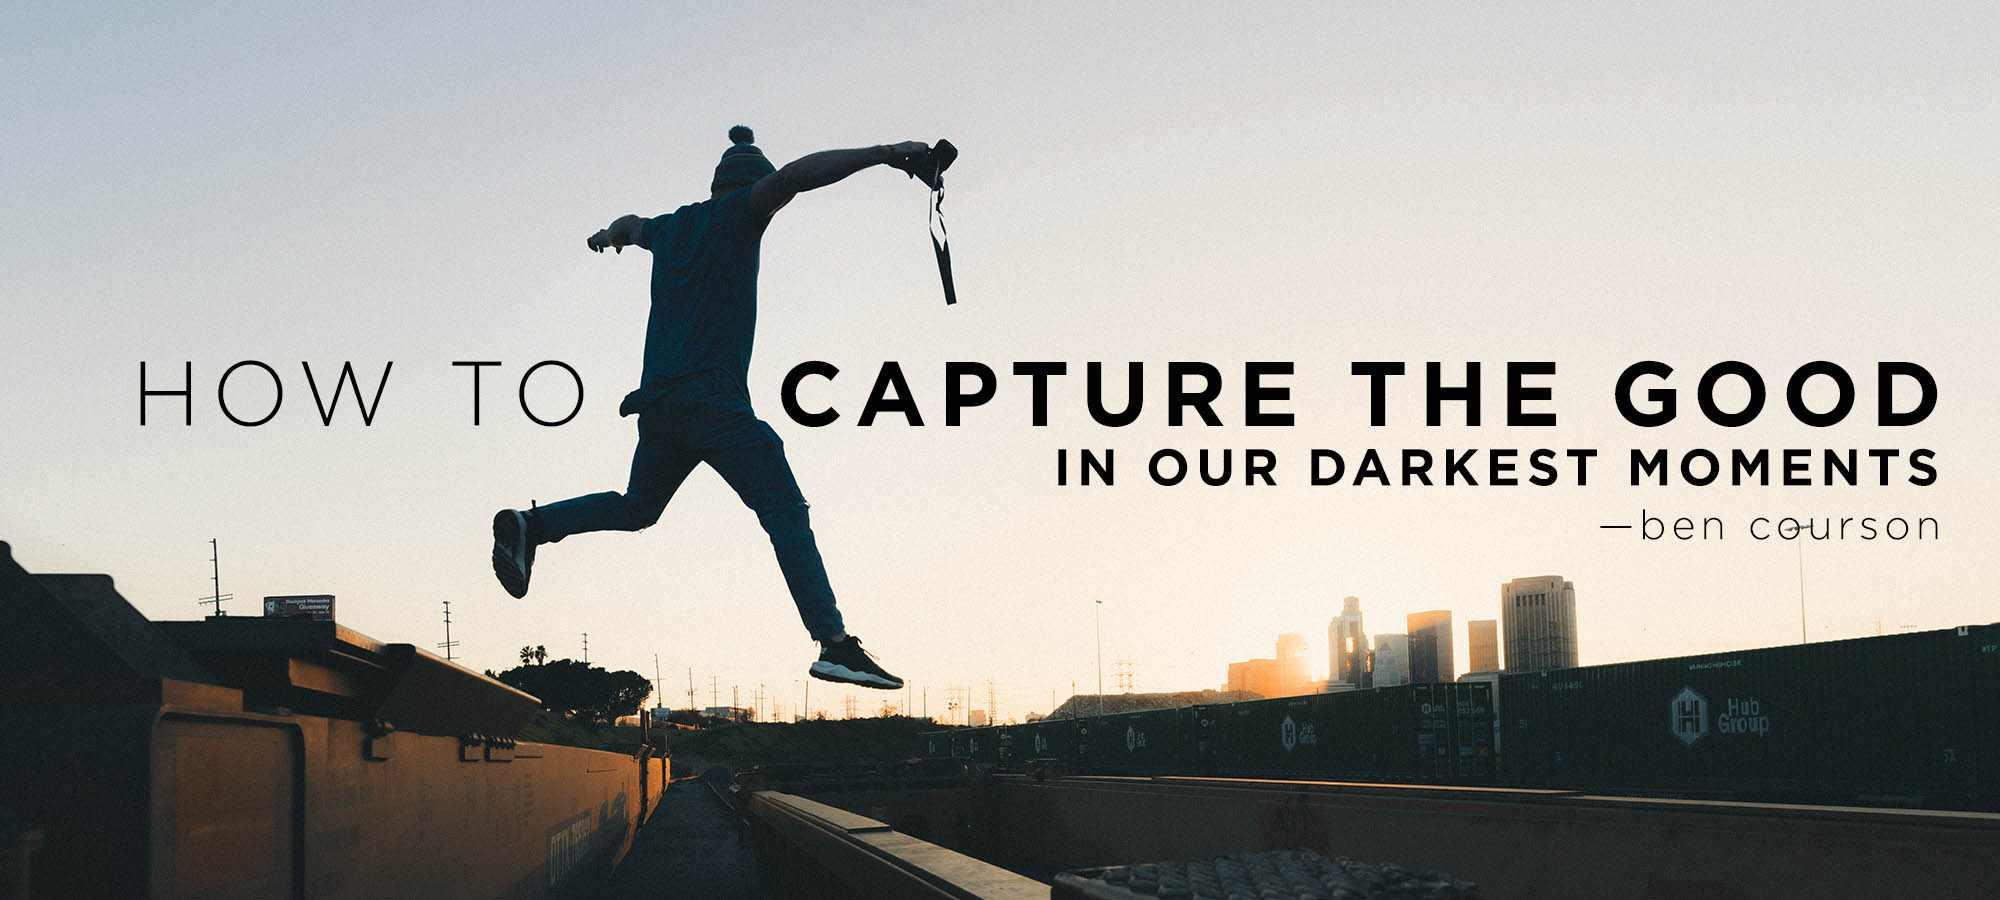 How to Capture the Good in Our Darkest Moments